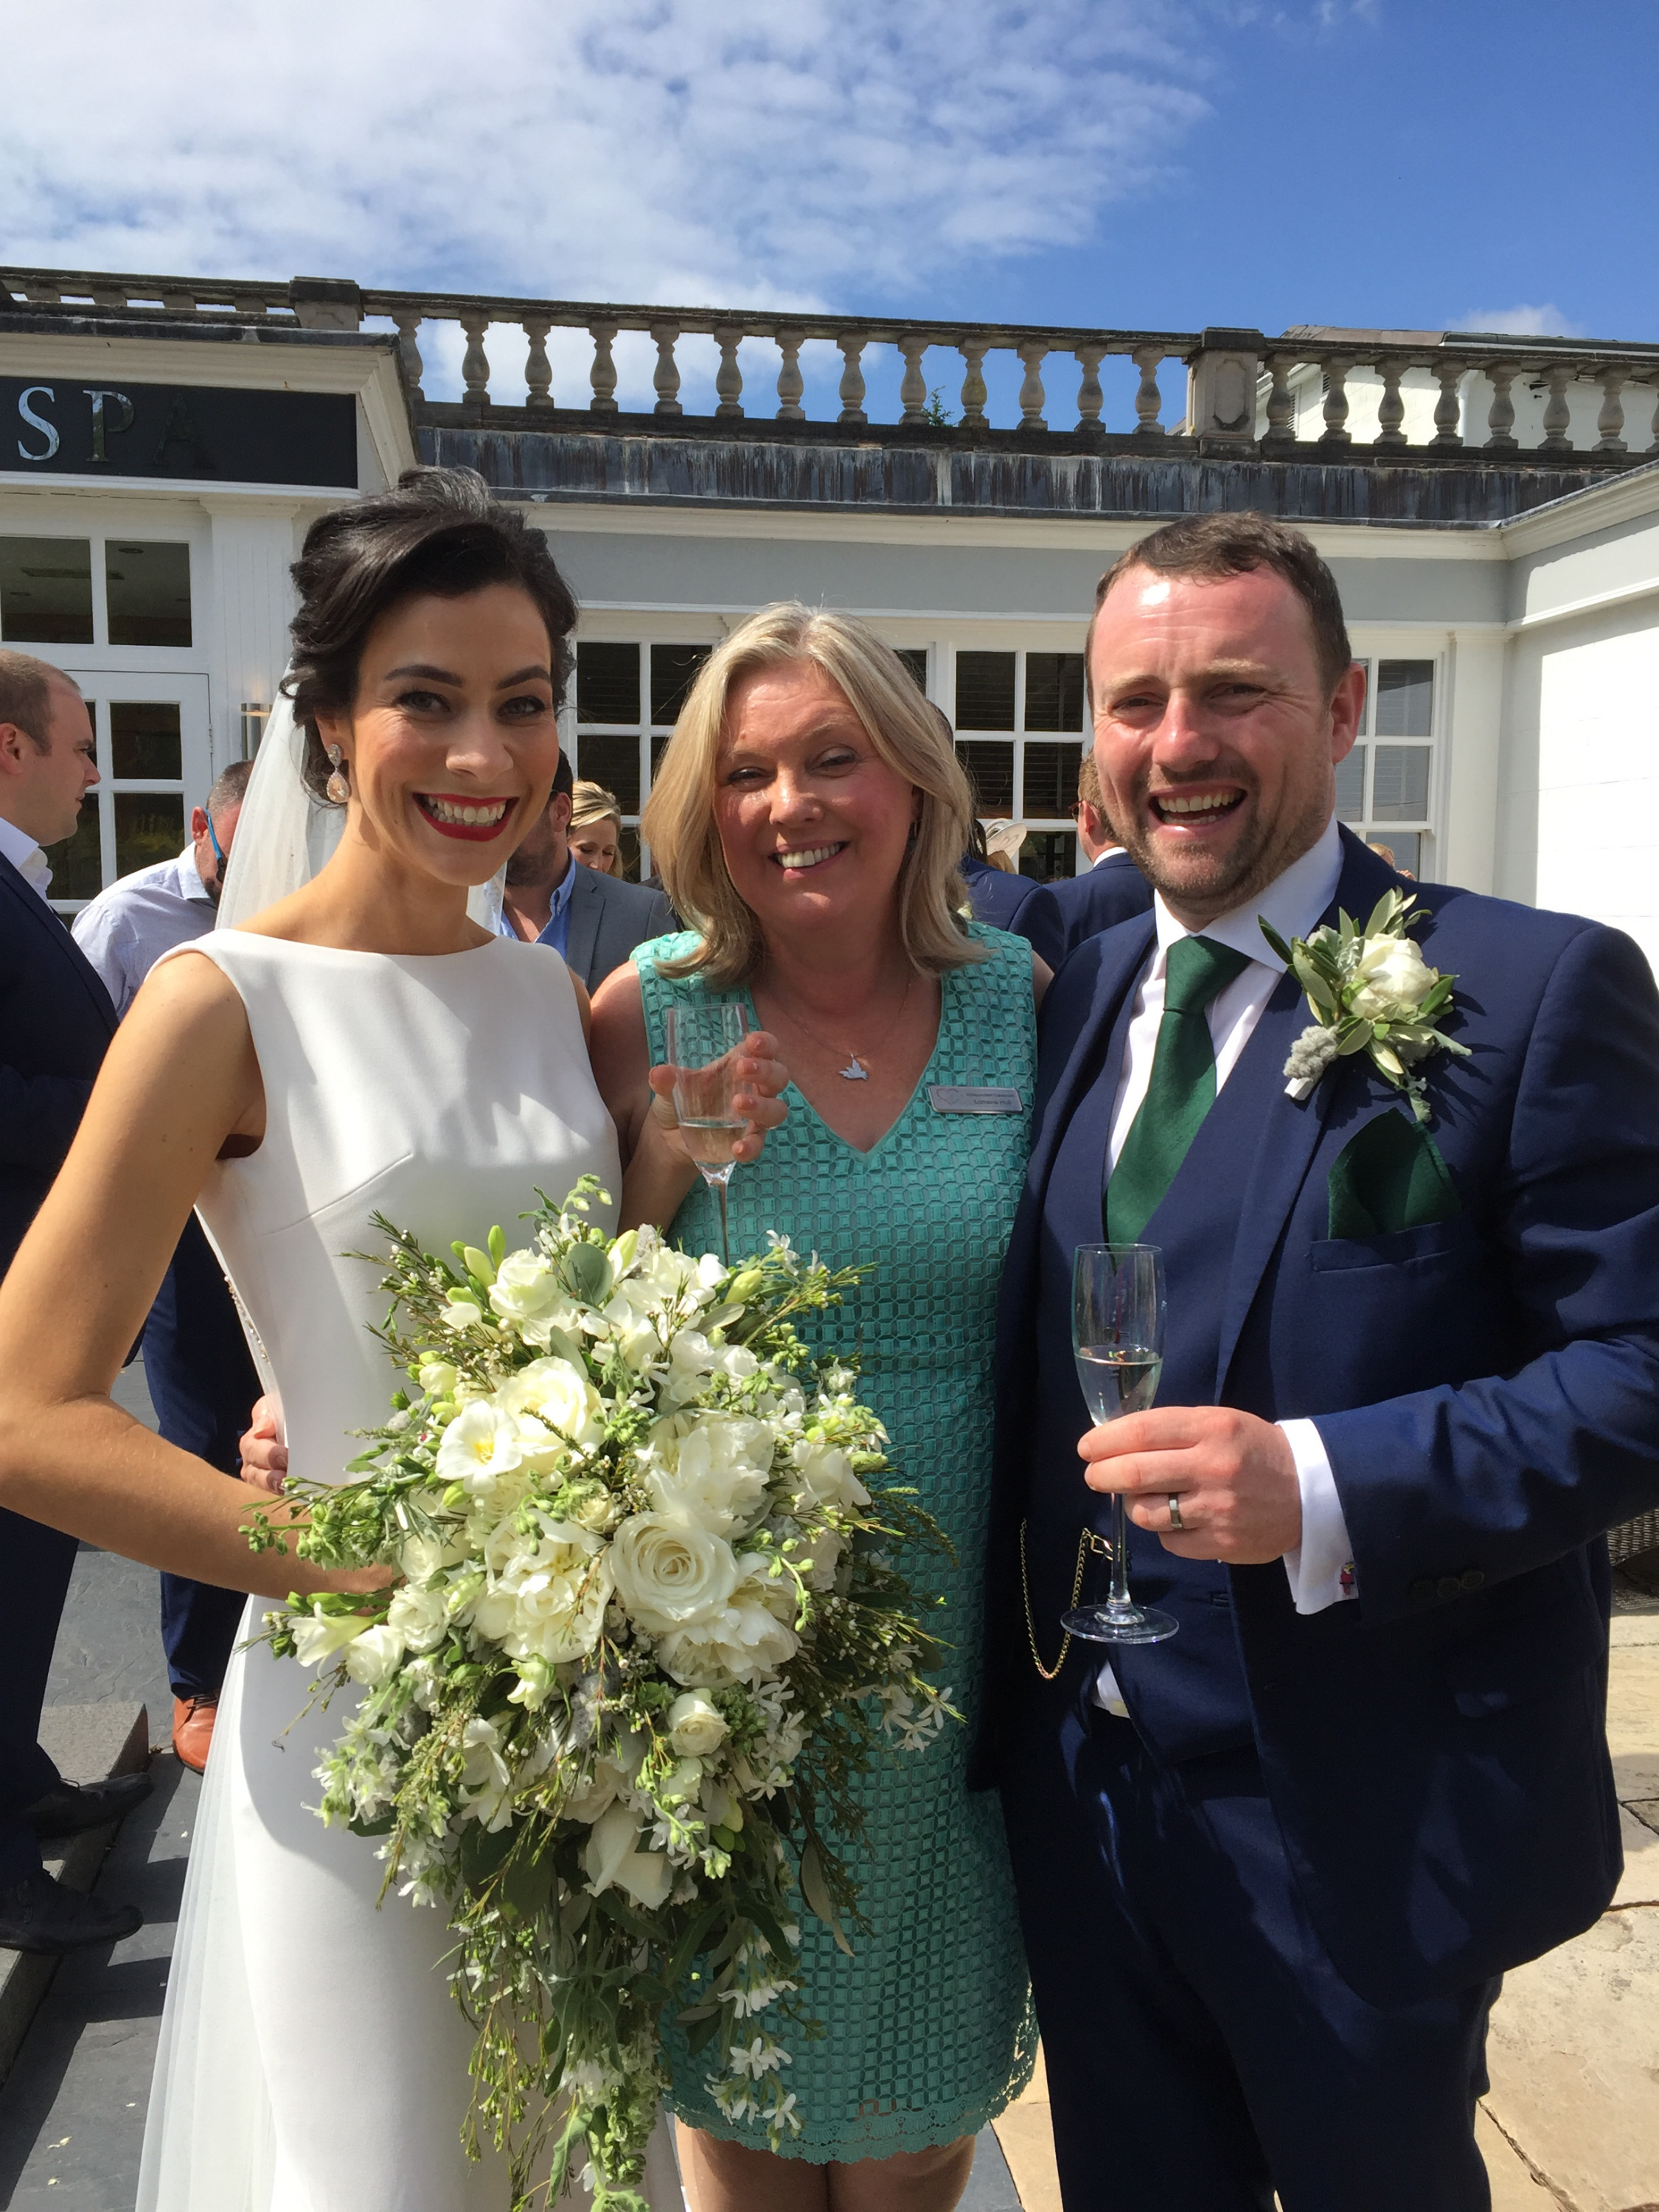 Cheshire Wedding Celebrant, Lorraine Hull